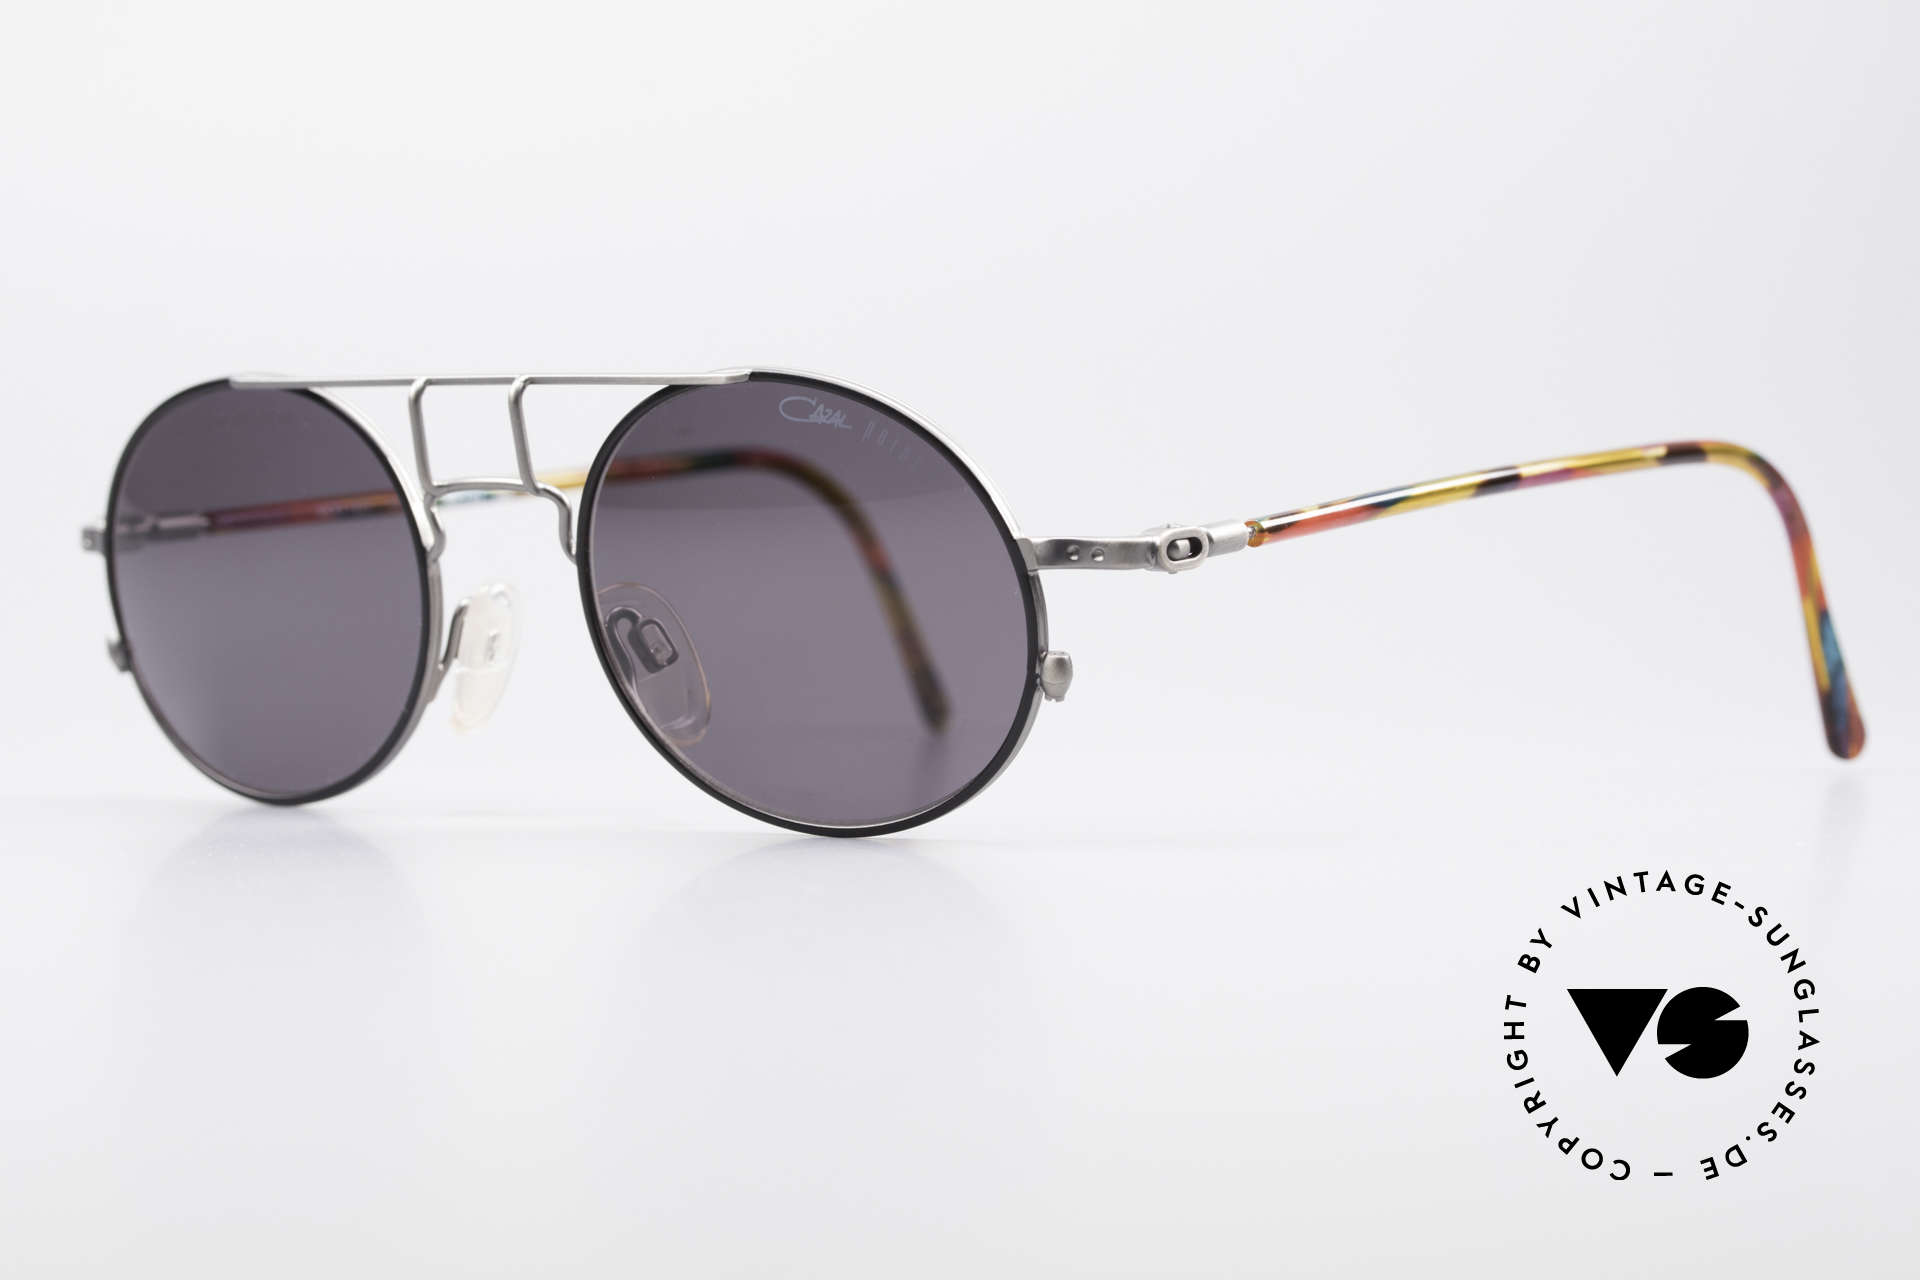 Cazal 1201 - Point 2 90's Industrial Style Shades, tangible superior crafting quality (made in GERMANY), Made for Men